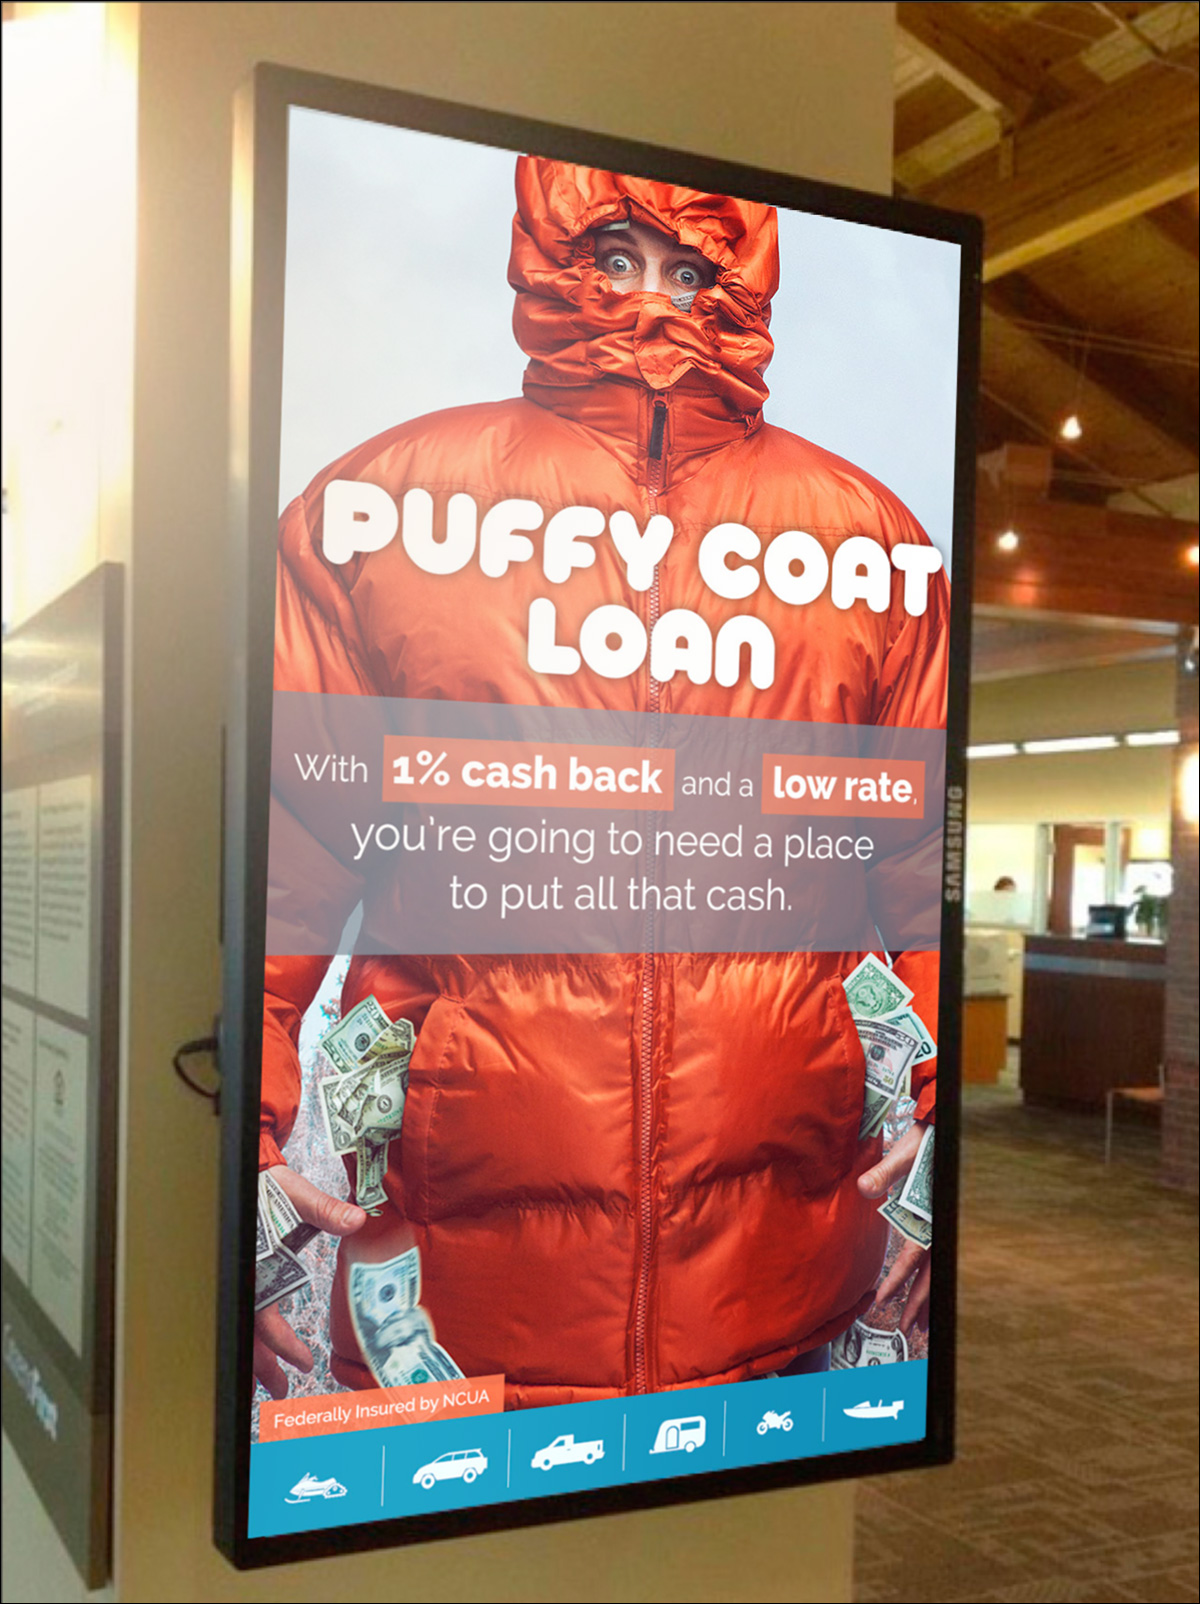 citizens_first_credit_union_advertising_campaign_puffy_coat_loan_milwaukee_chicago_photographer_06